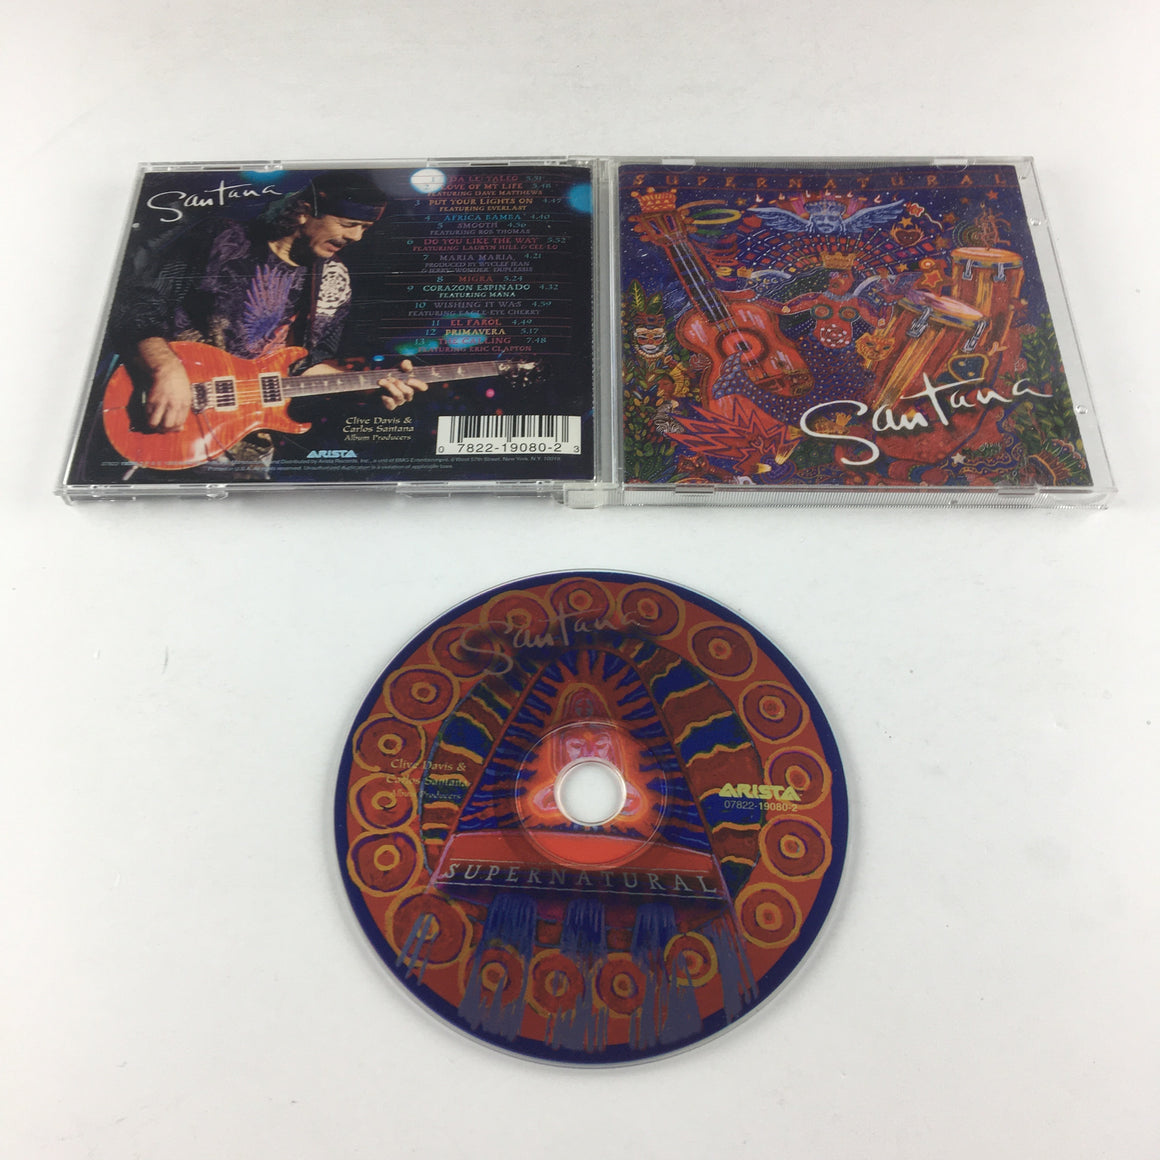 Santana Supernatural Used CD VG+ 07822-19080-2, 19080-2